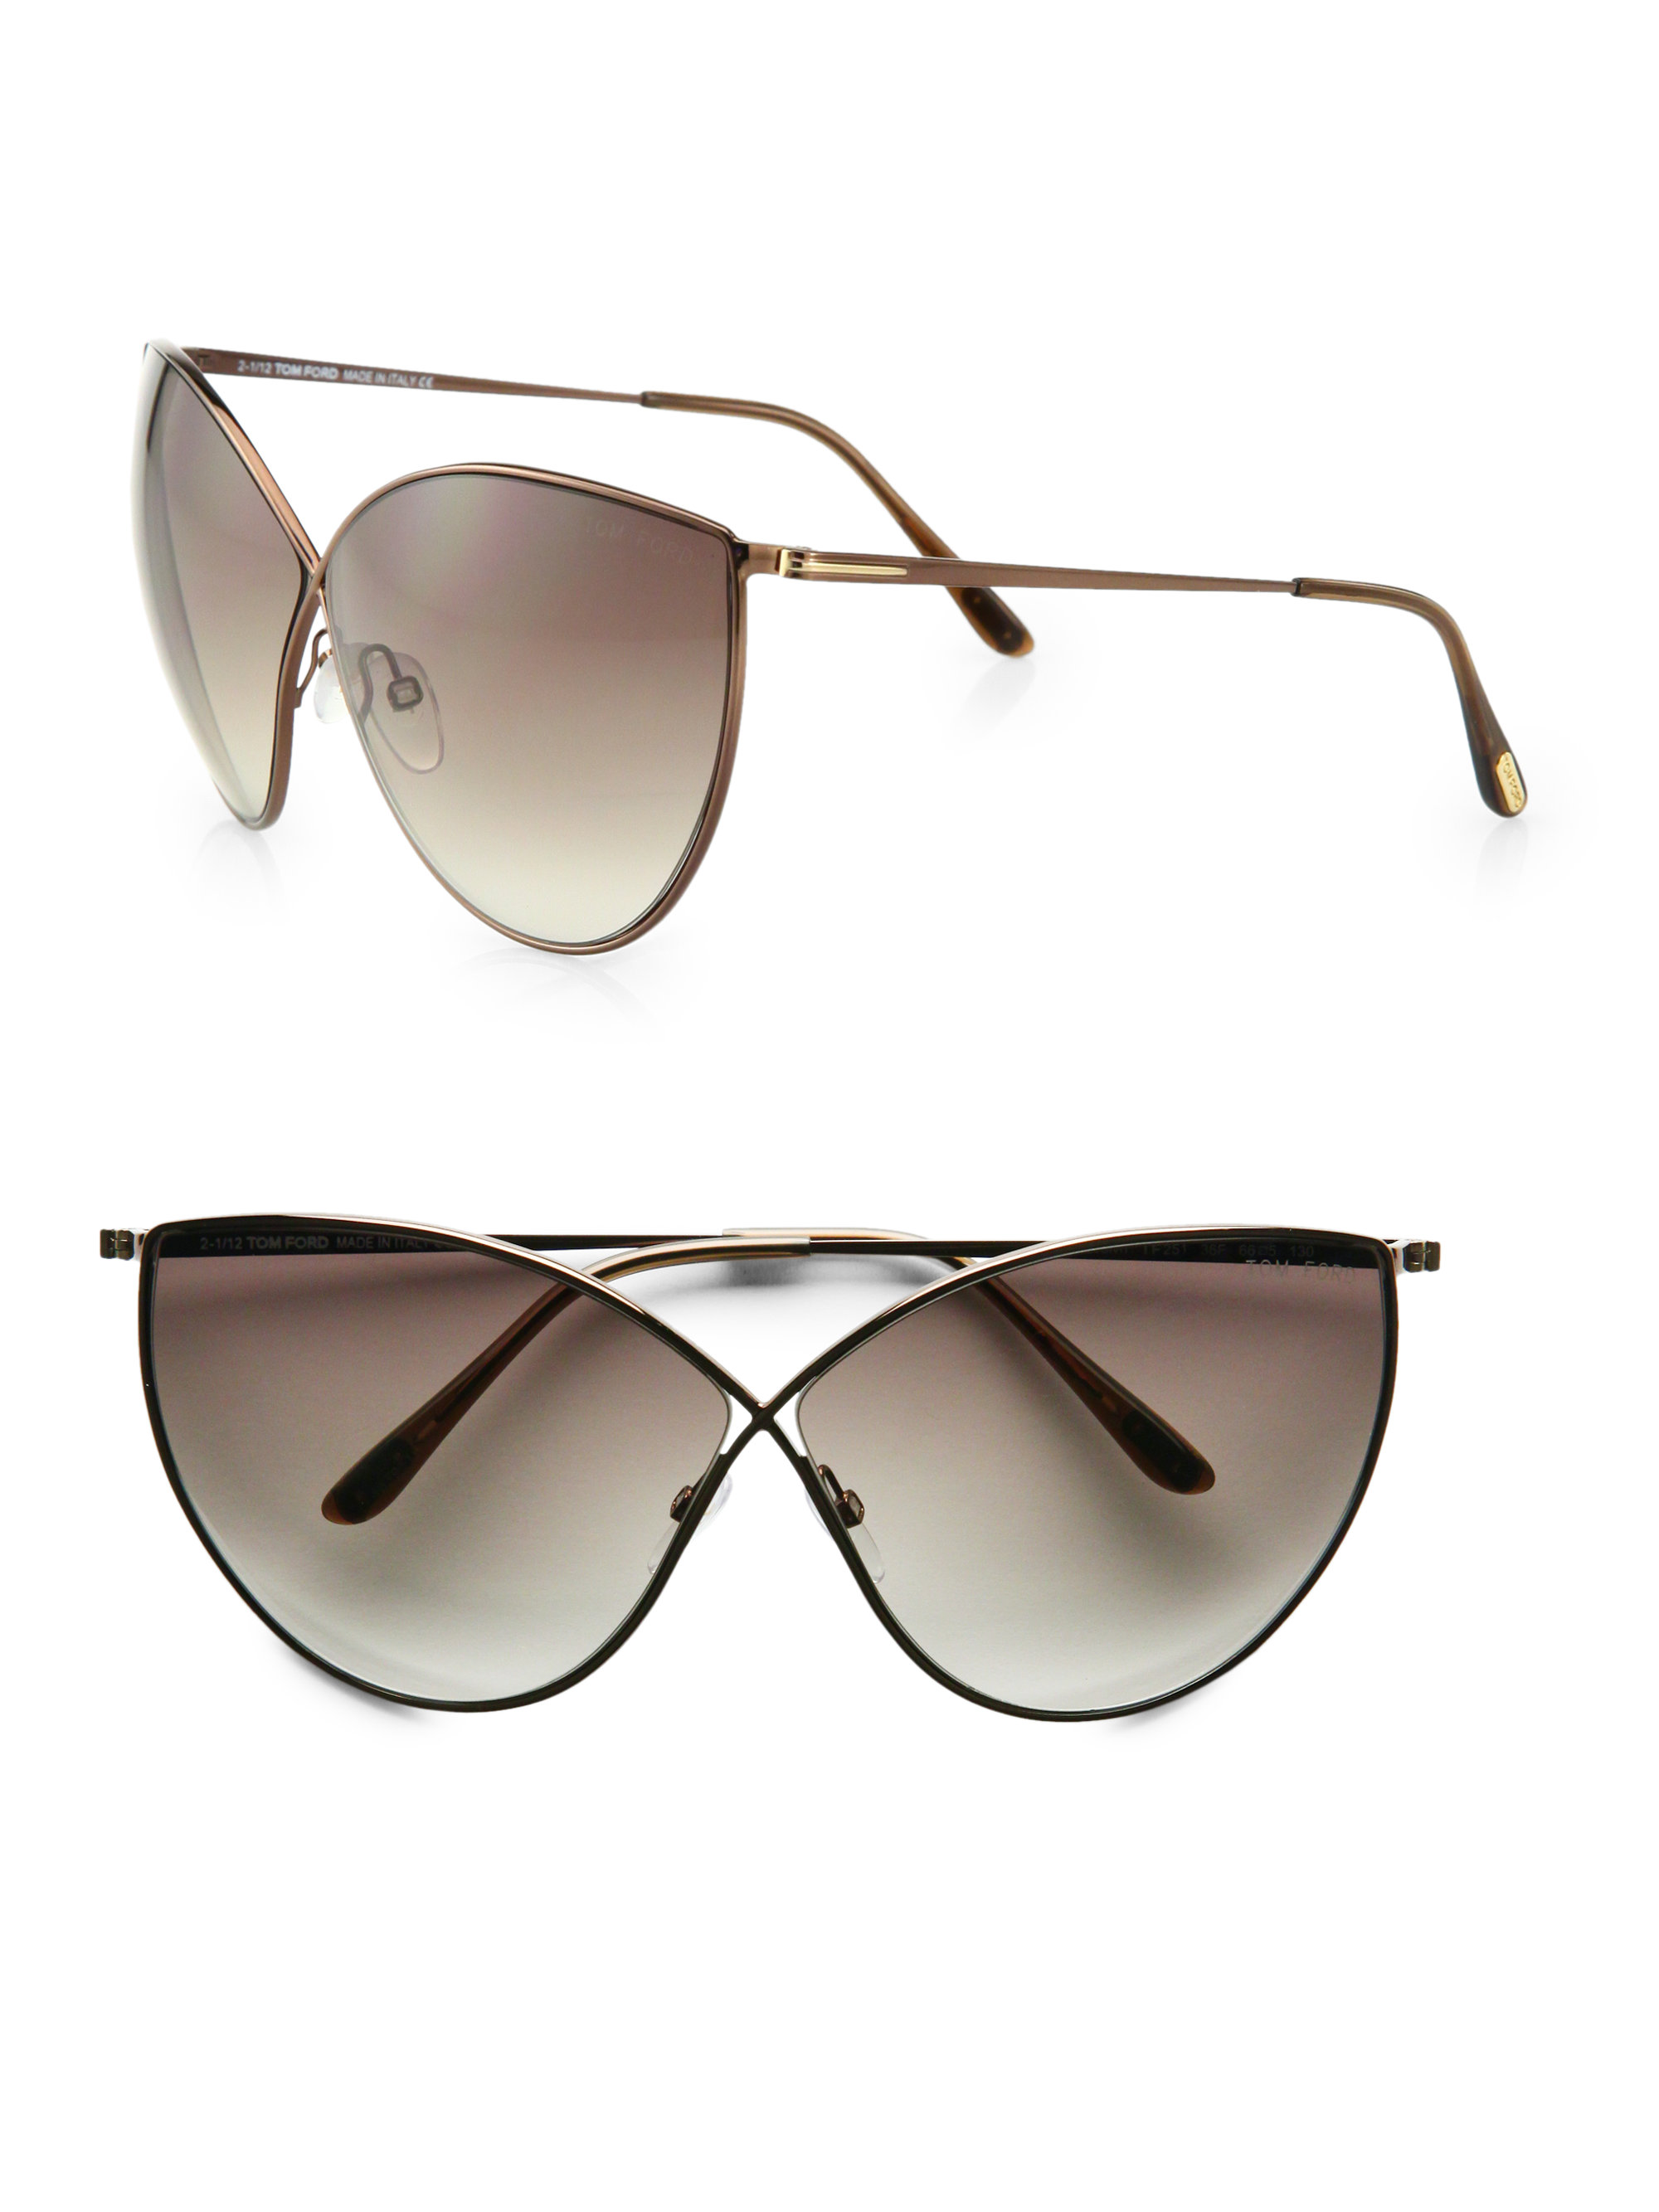 54a21fd23888 Tom Ford Evelyn Metal Catseye Sunglasses in Pink - Lyst